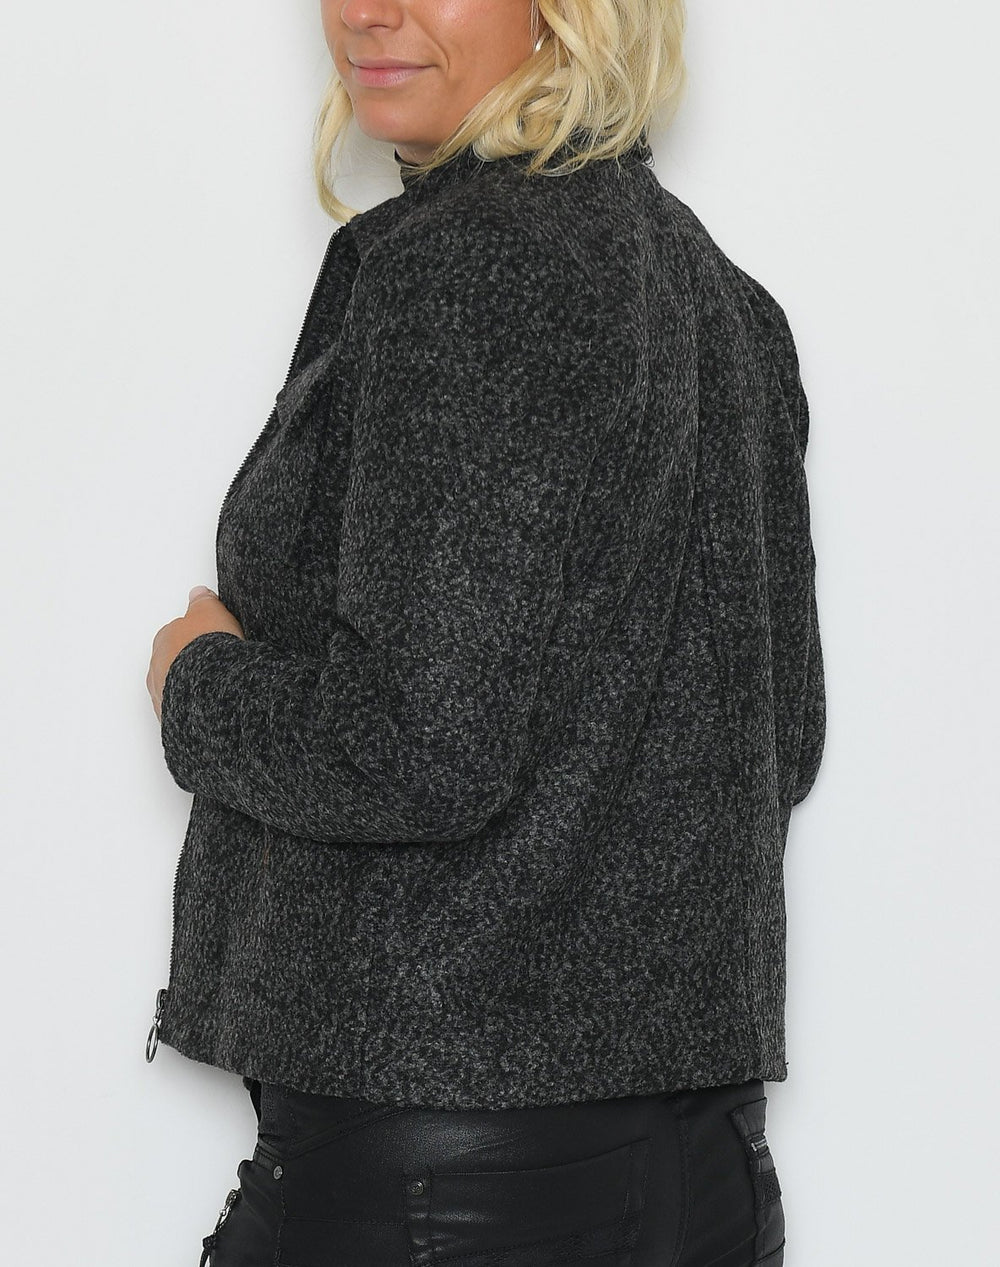 Kaffe KAronja short jacket dark grey - Online-Mode